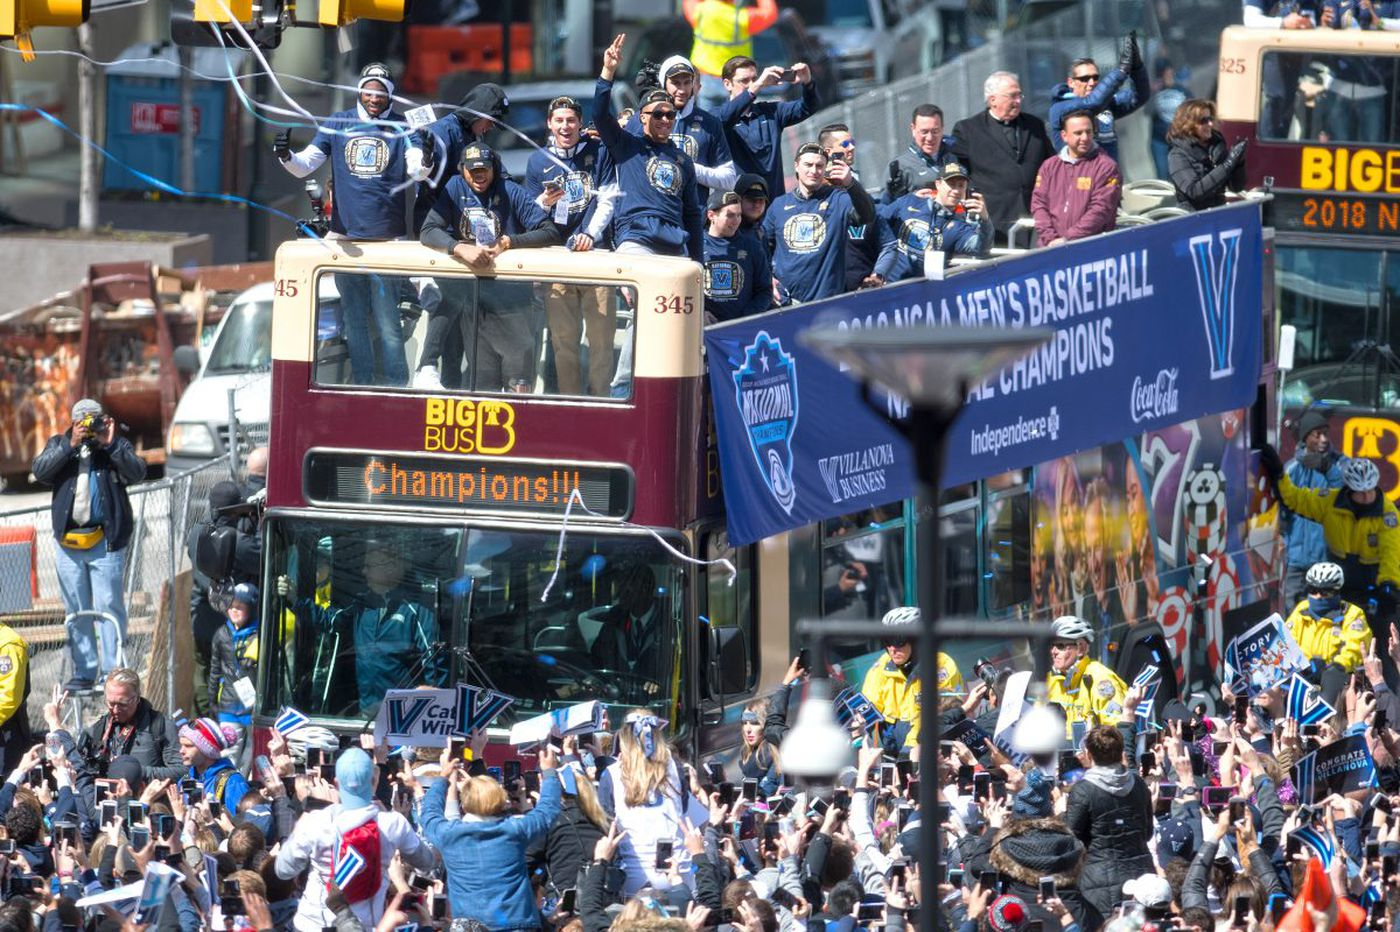 Jay Wright and Villanova Wildcats parade down Market Street, staking claim as Philly icons